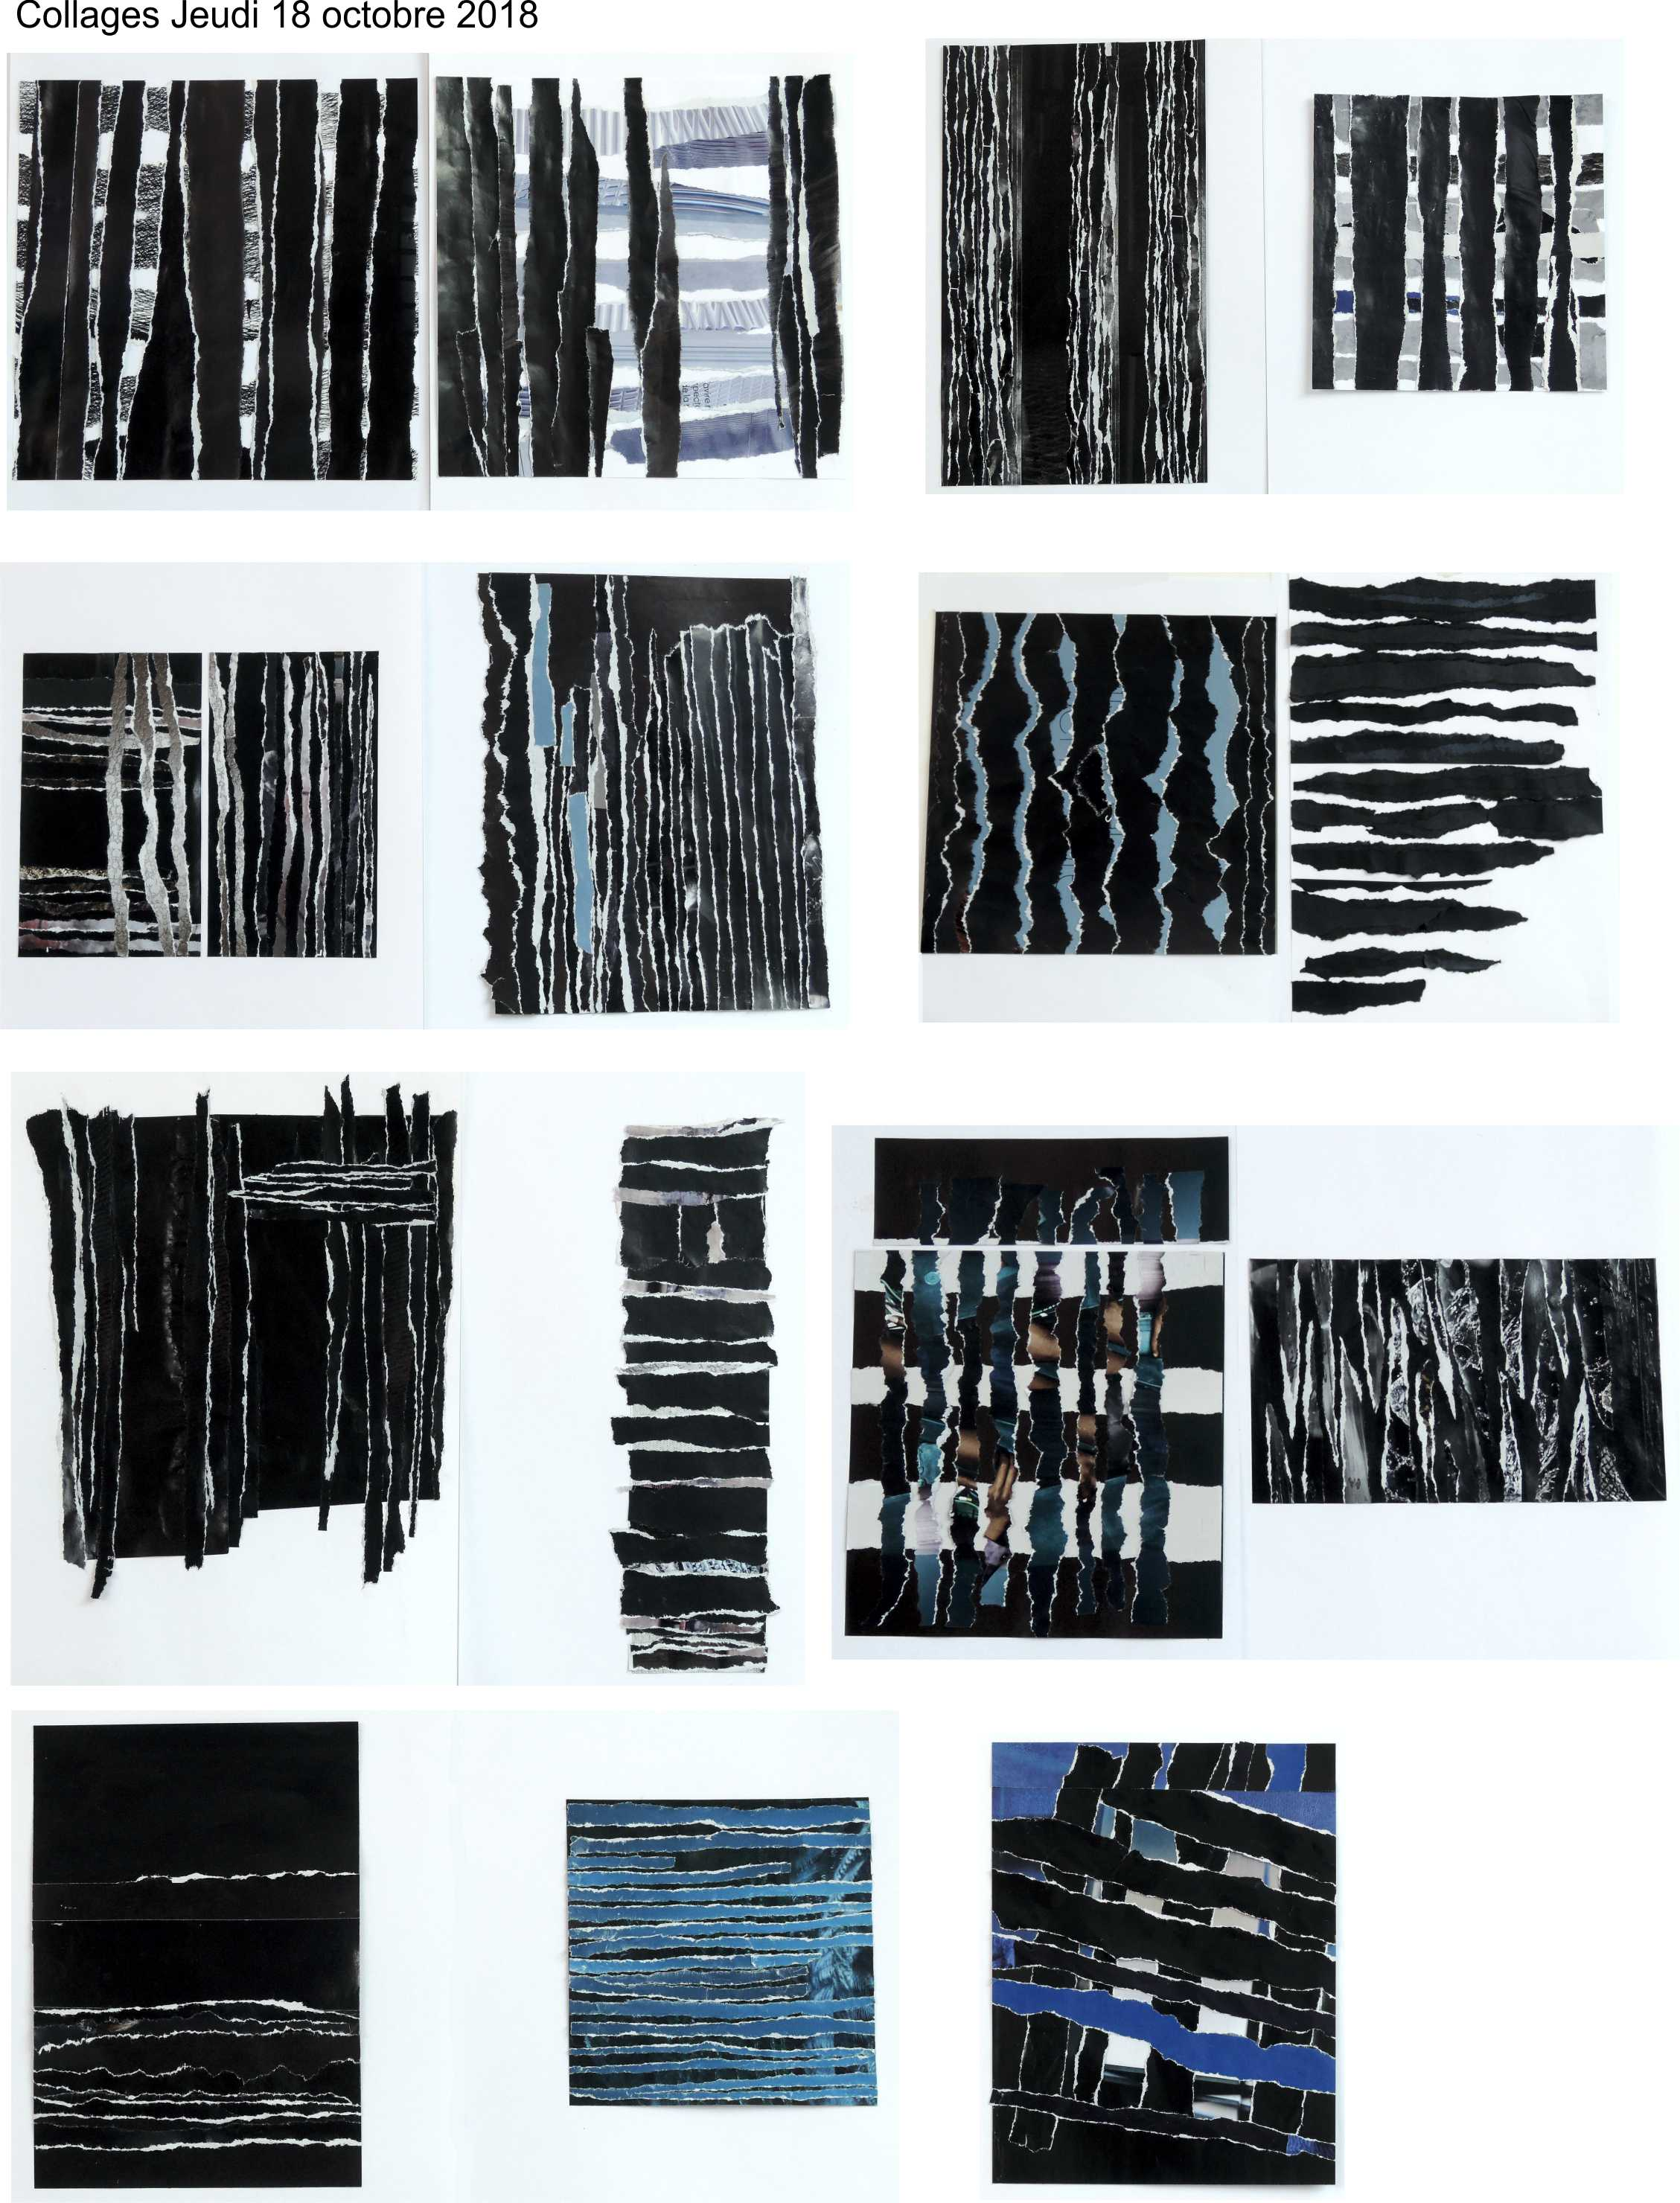 Collages Soulages Pierre jeudi 18 octobre 2018